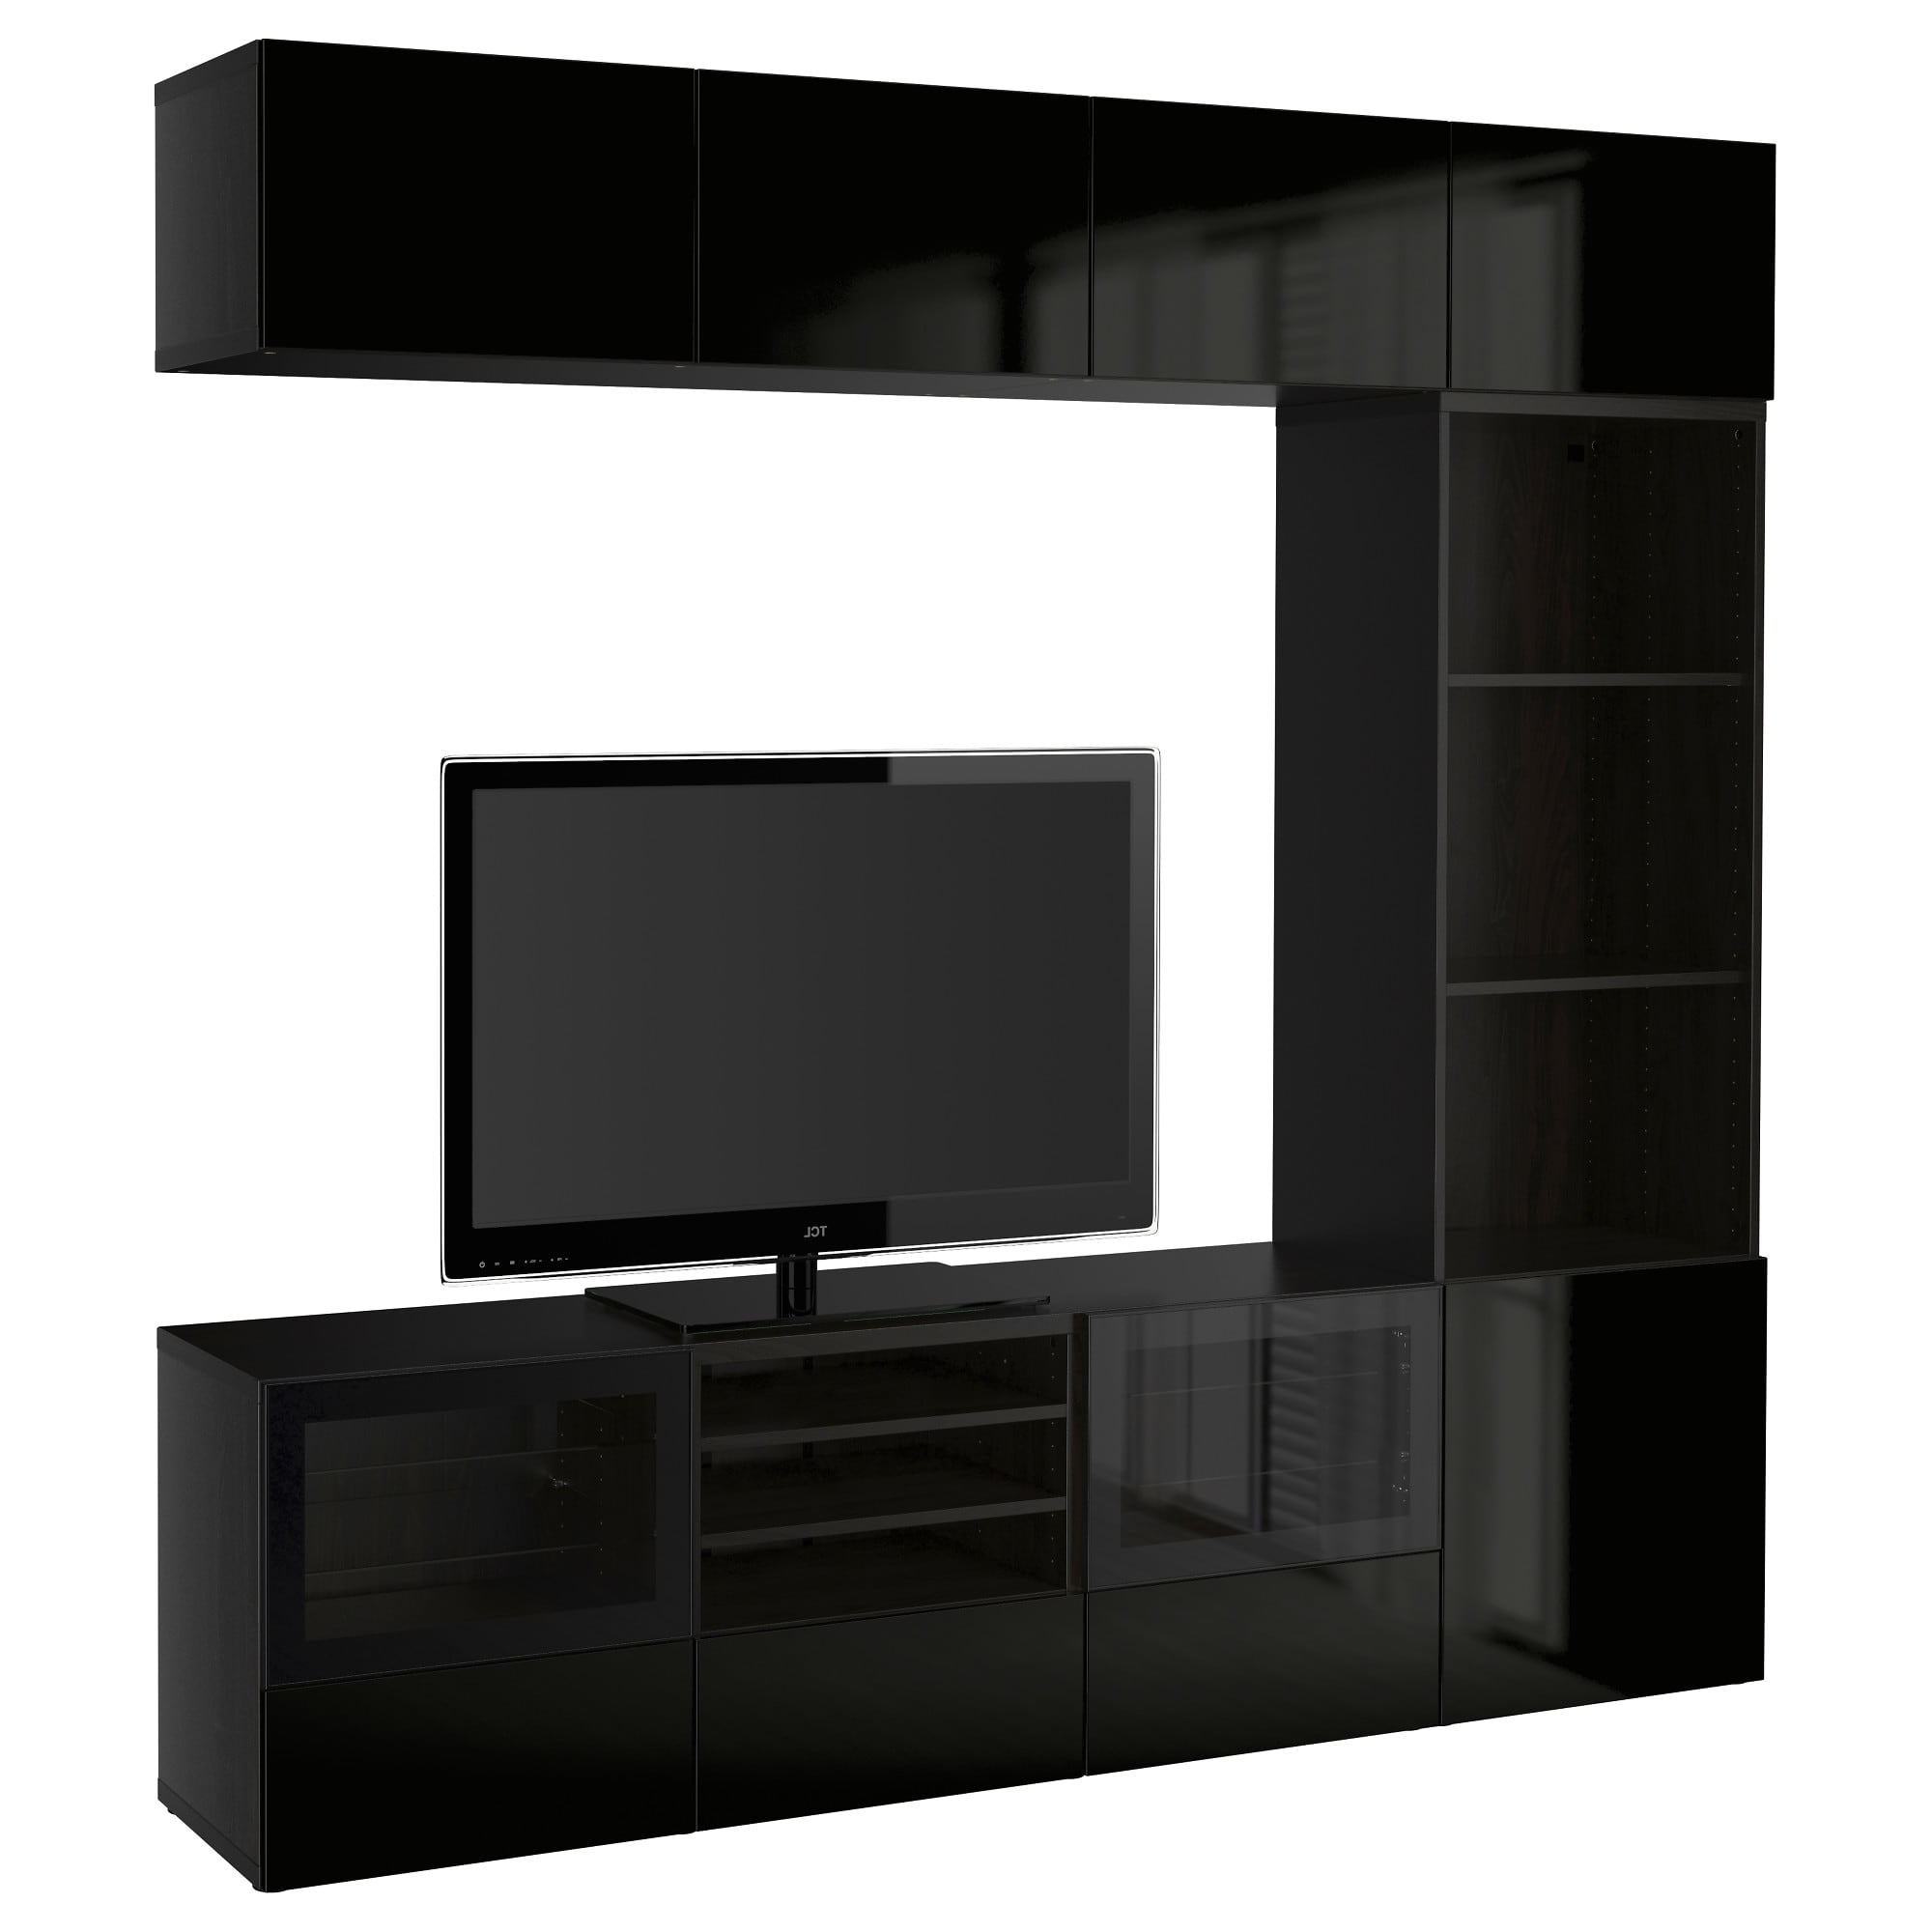 Ikea With Regard To Best And Newest Dresser And Tv Stands Combination (Gallery 18 of 20)